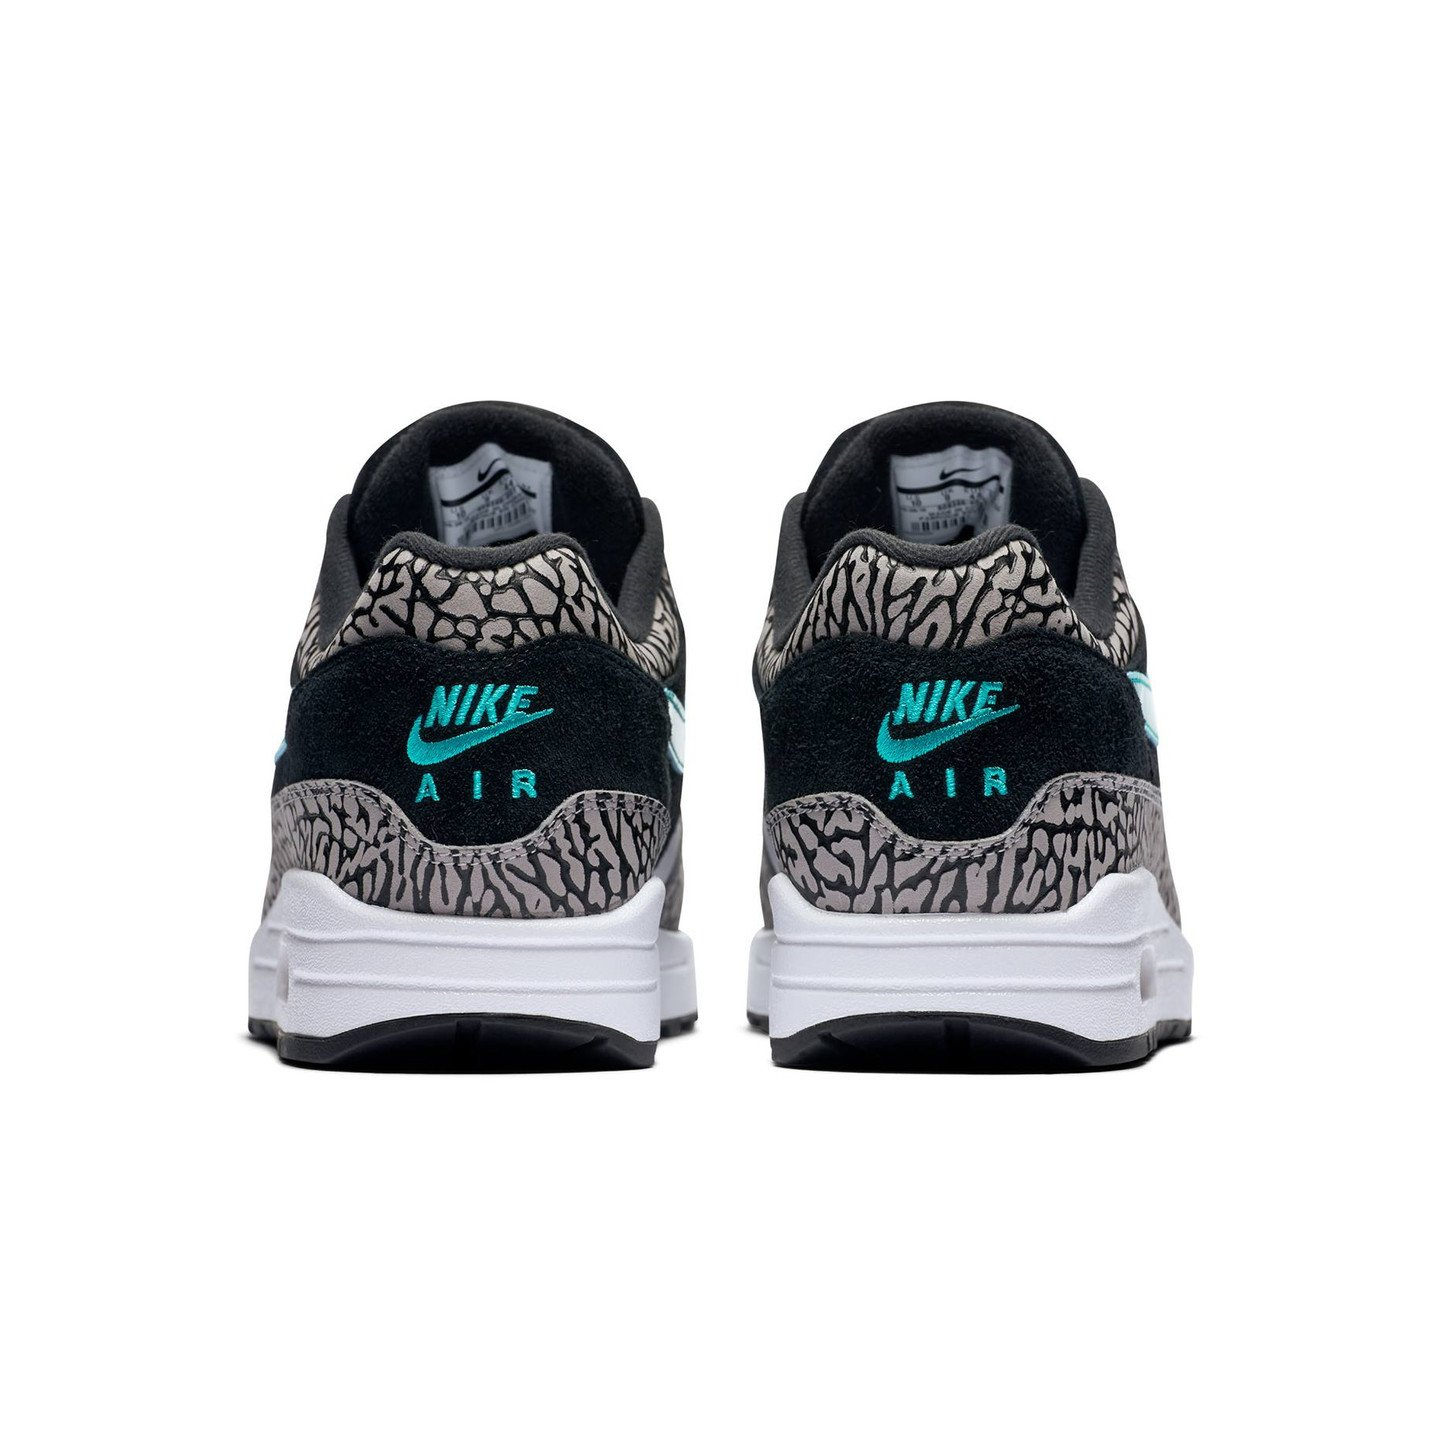 Nike Air Max 1 Premium Retro 'Atmos Elephant' Medium Grey / Clear Jade / Black / White 908366-001